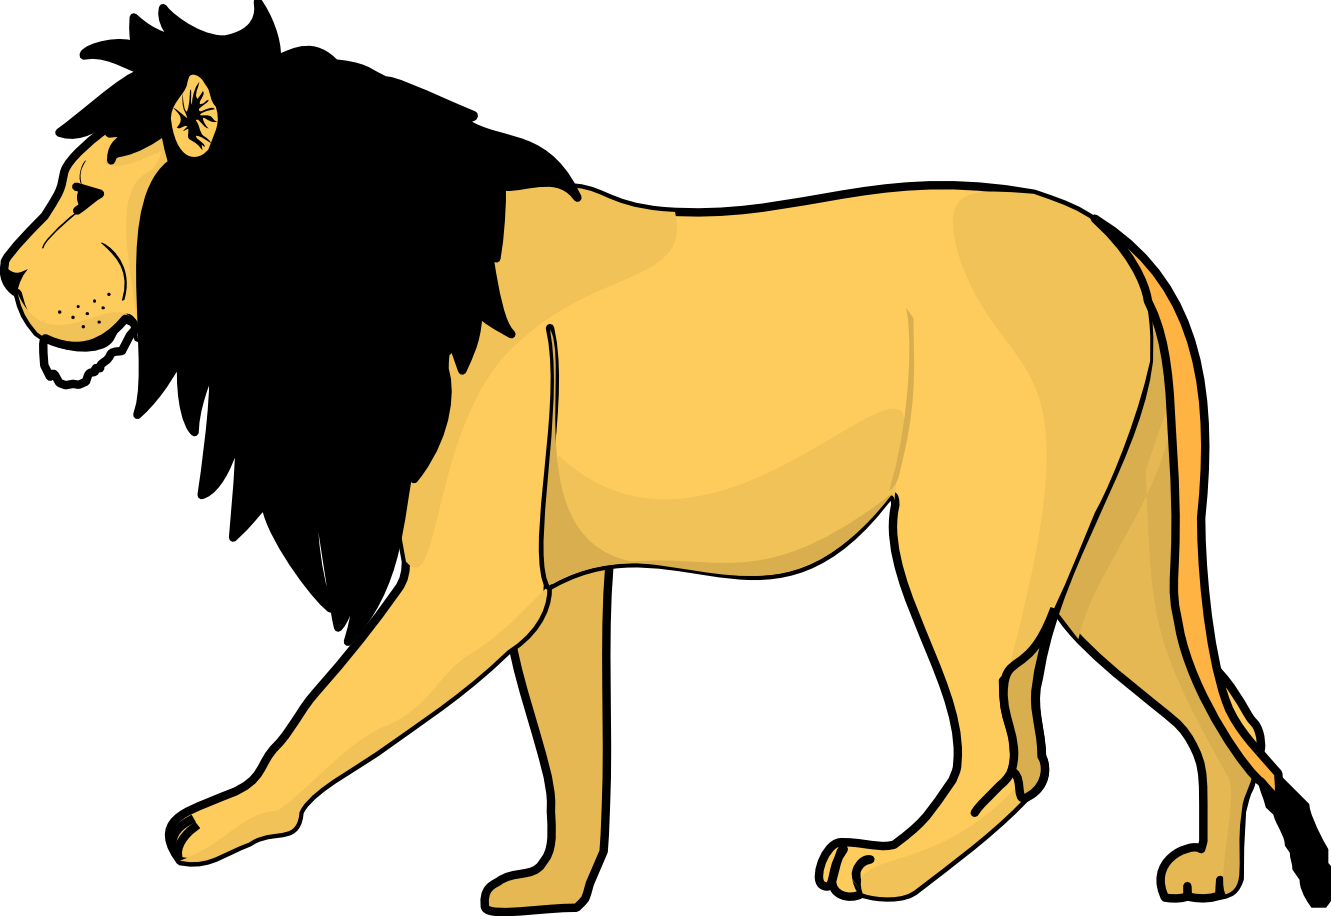 Clipart hand lion. Free images download clip